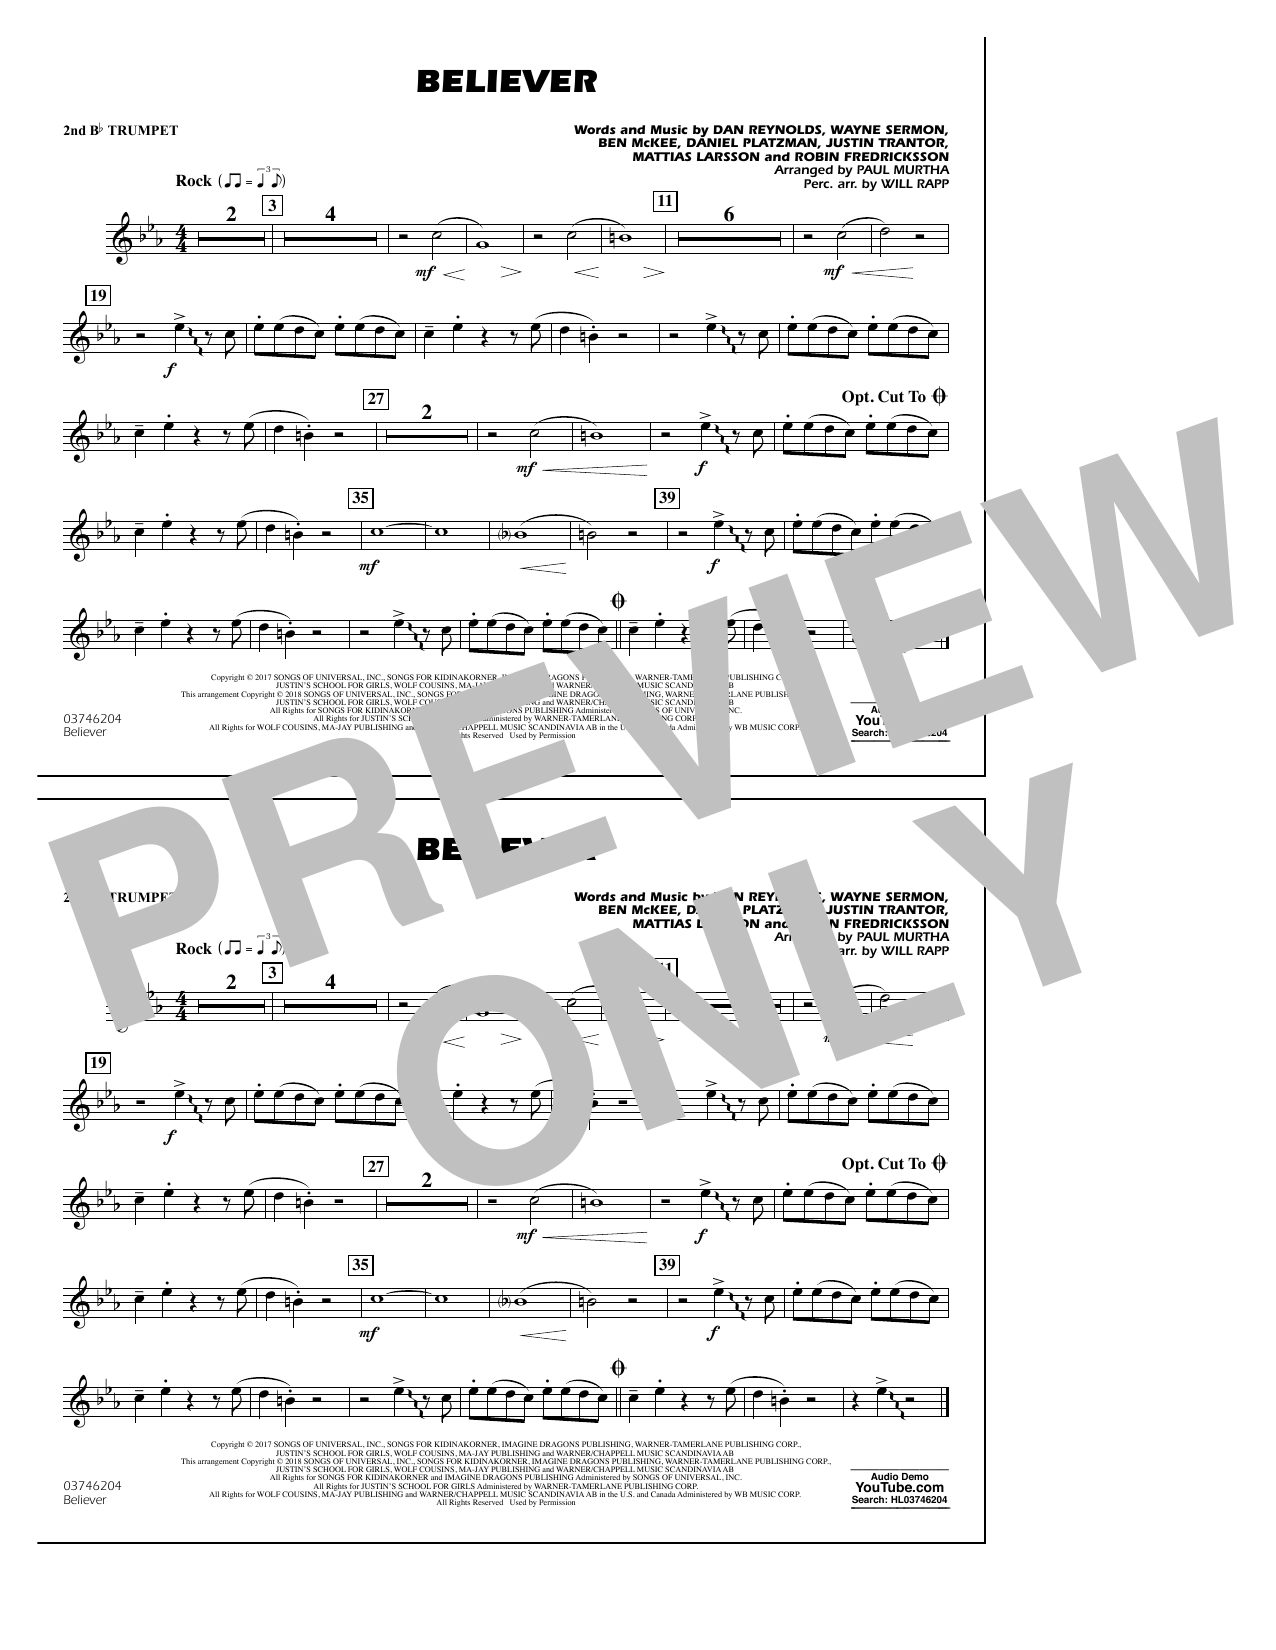 Believer - 2nd Bb Trumpet - Sheet Music to Download